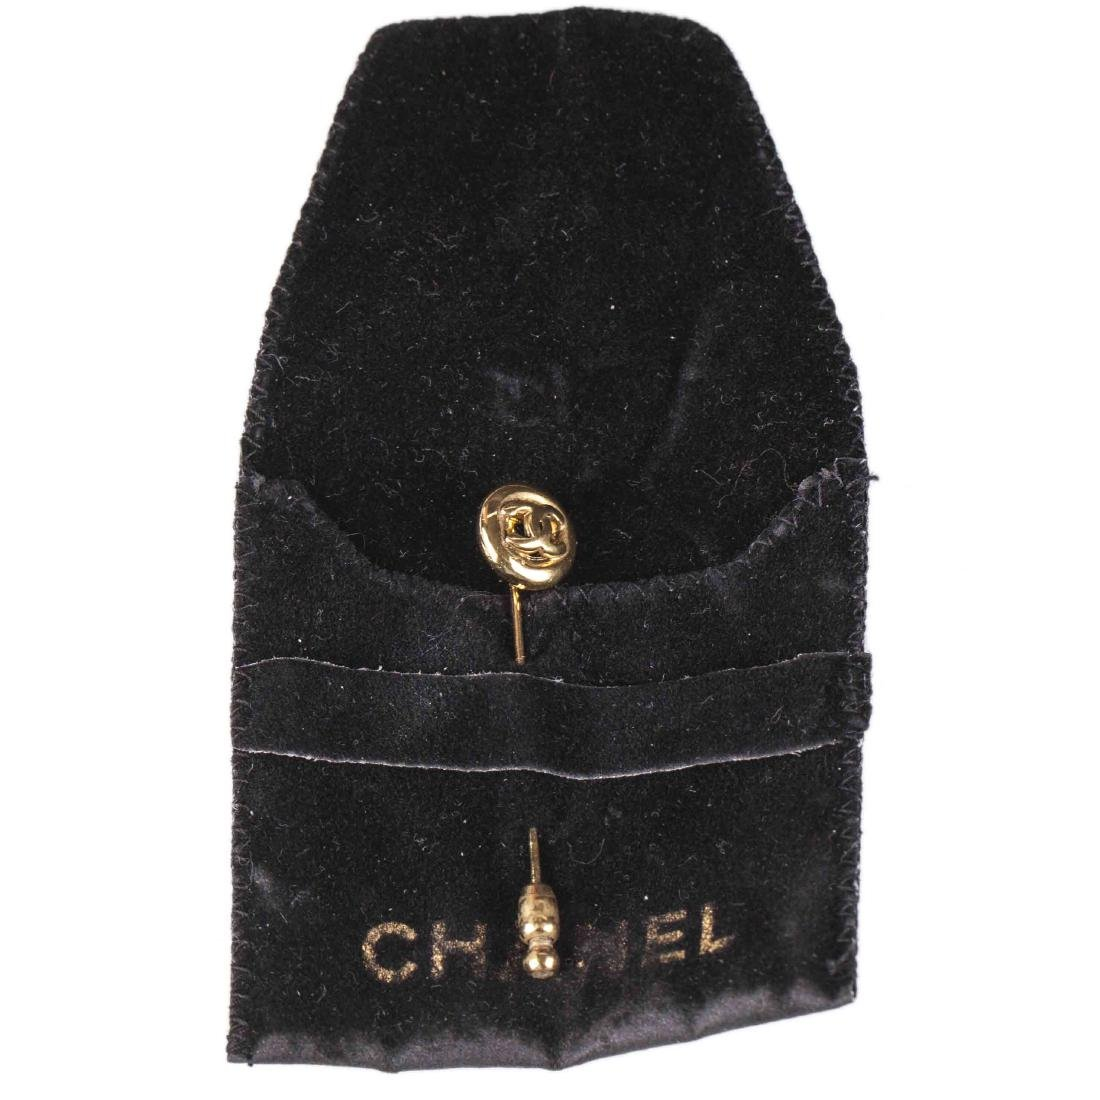 Chanel pin. Around 1960s. Marked